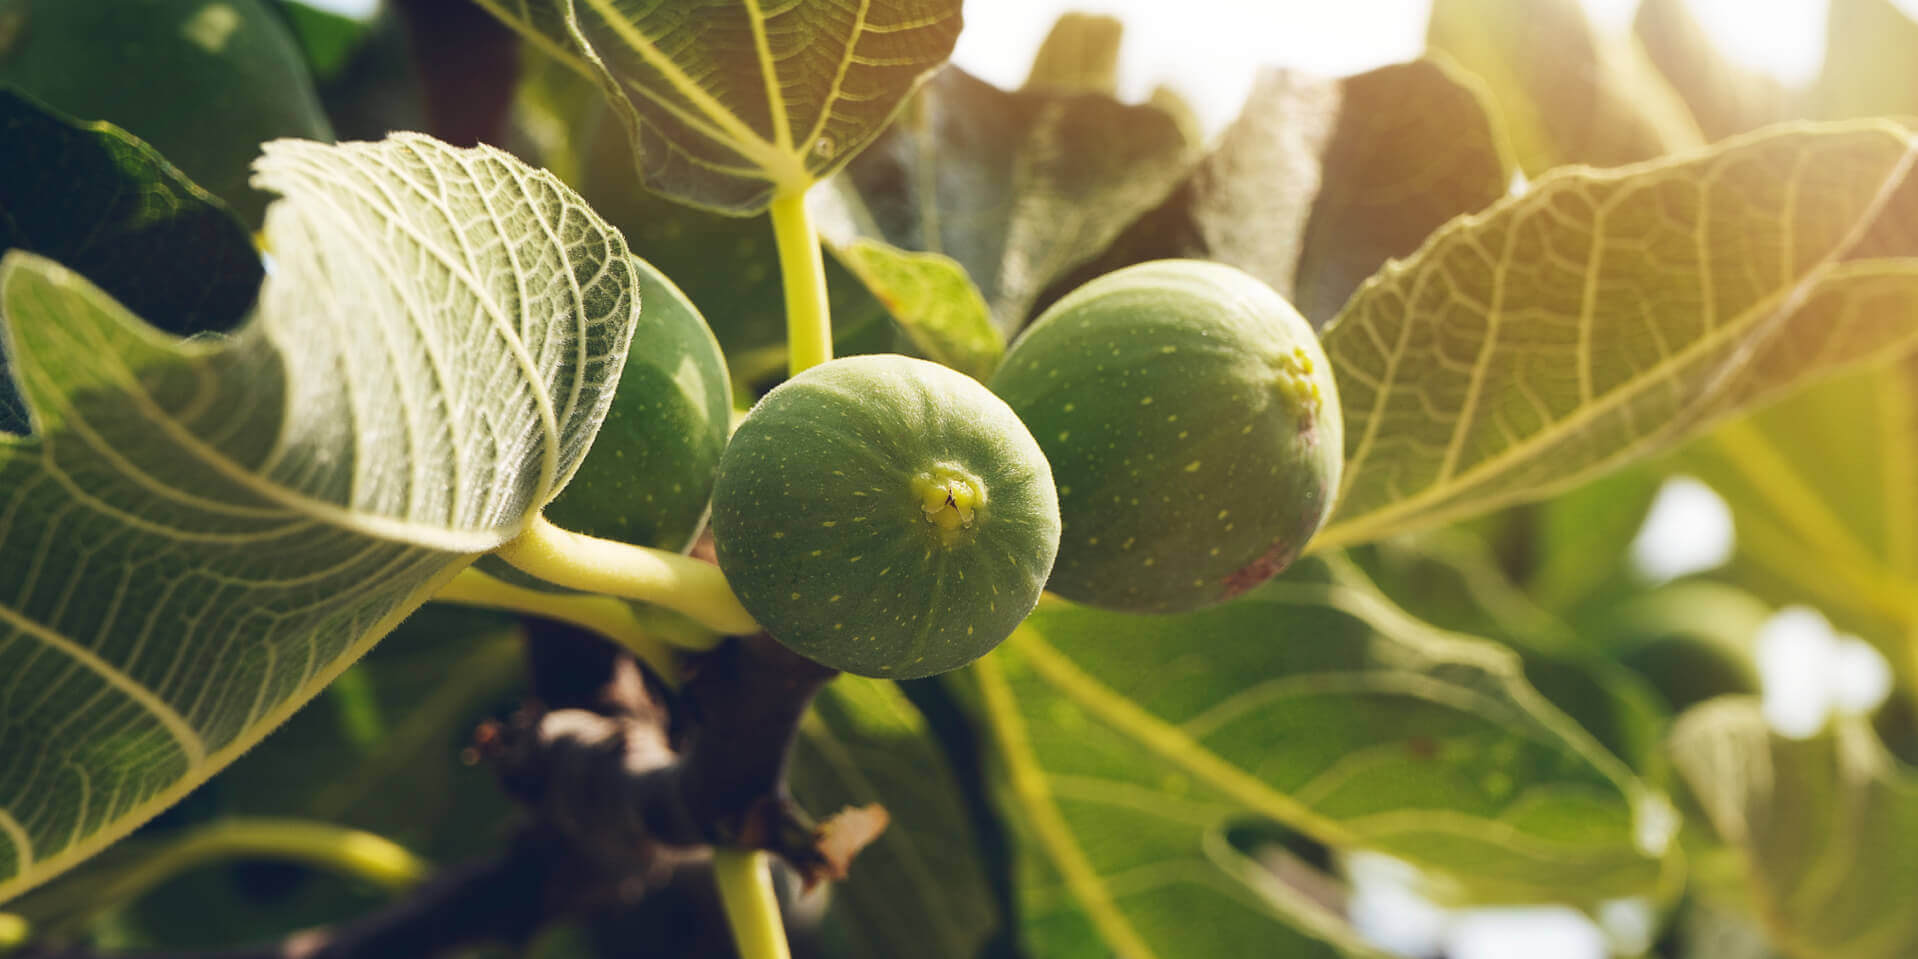 green fig fruits used to produce natural essential oil of green fig